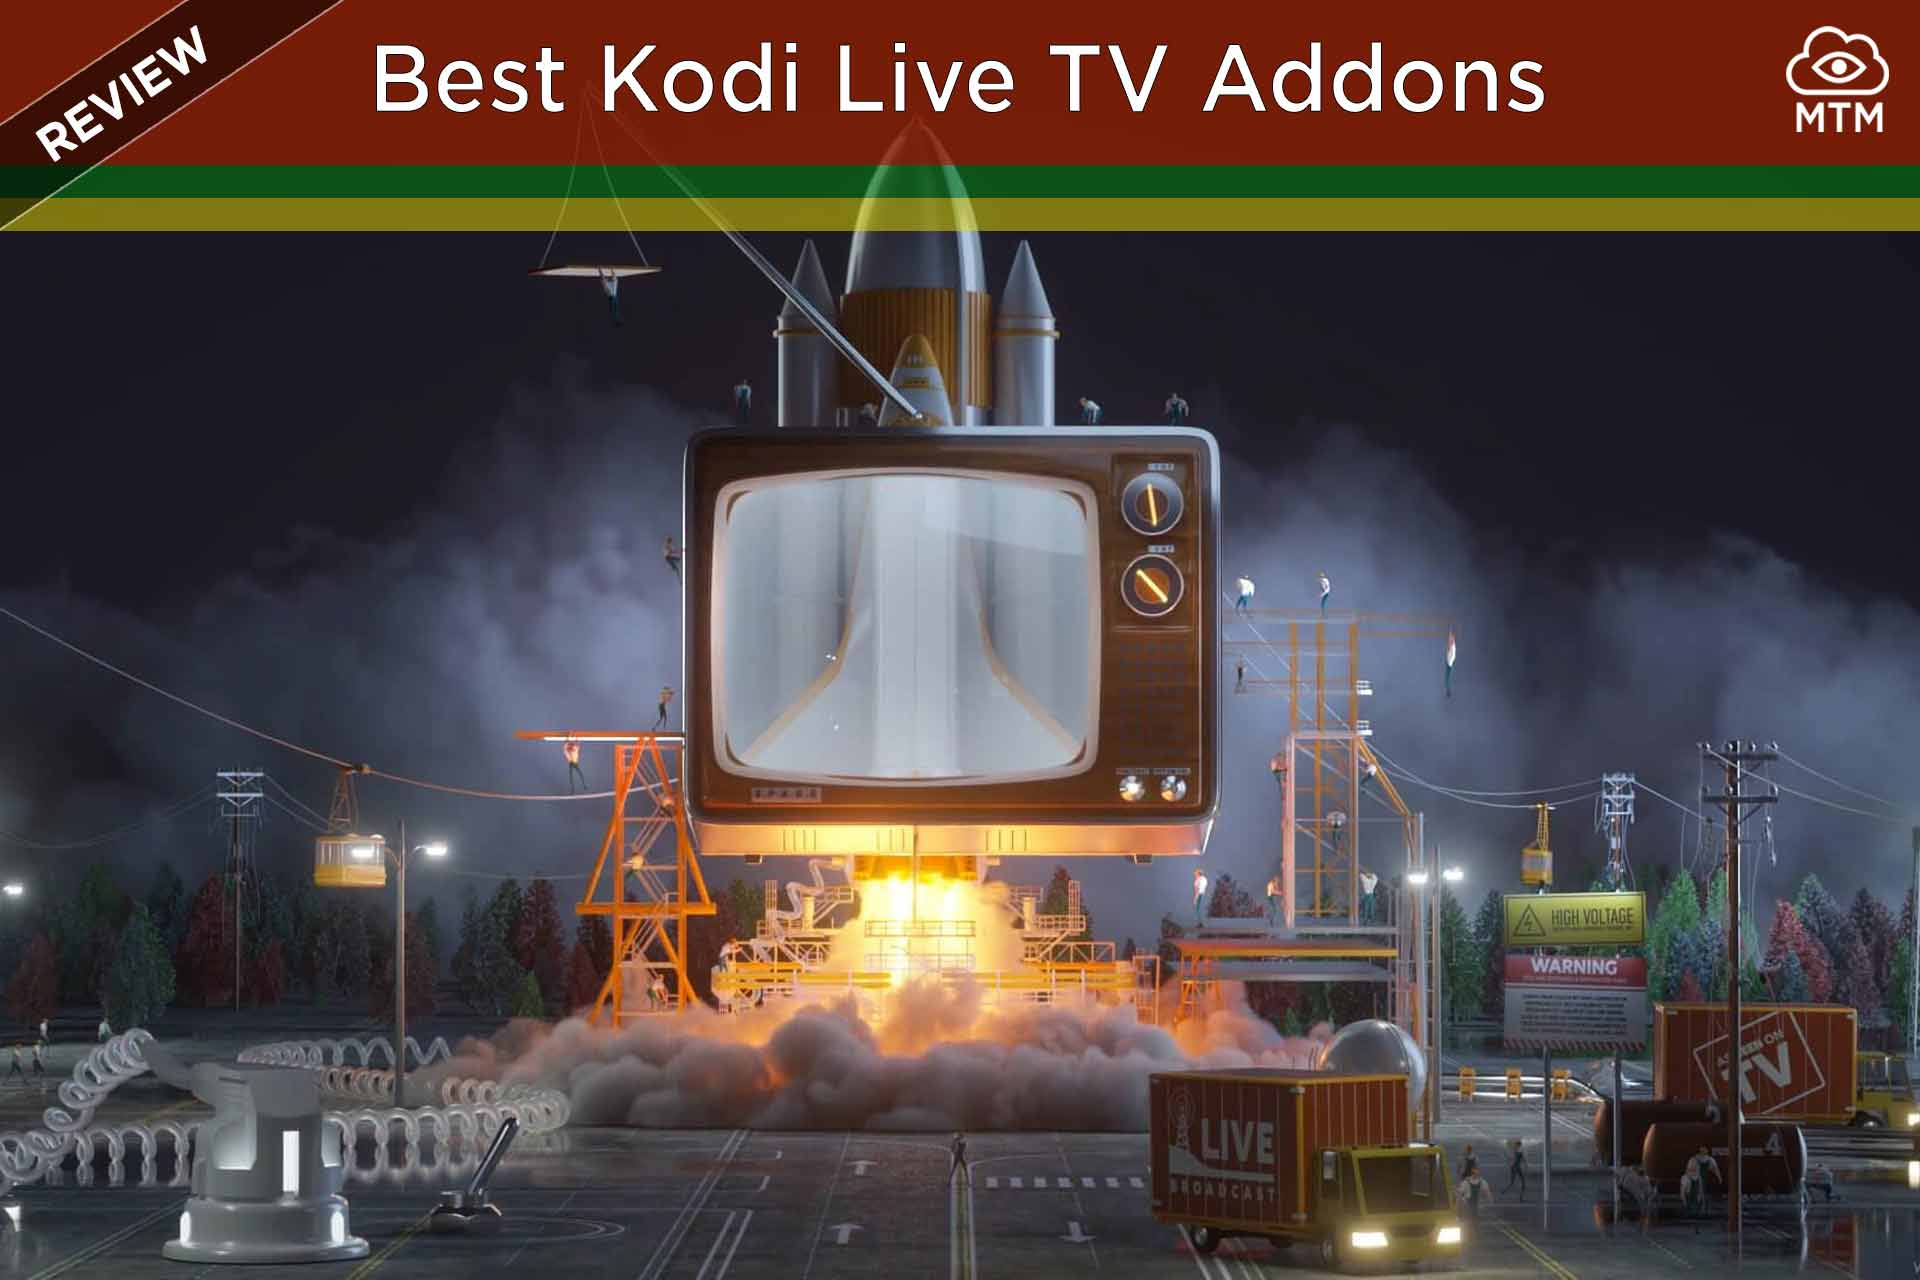 Top 15 Best Live TV Kodi Addons for Free IPTV Streaming [May